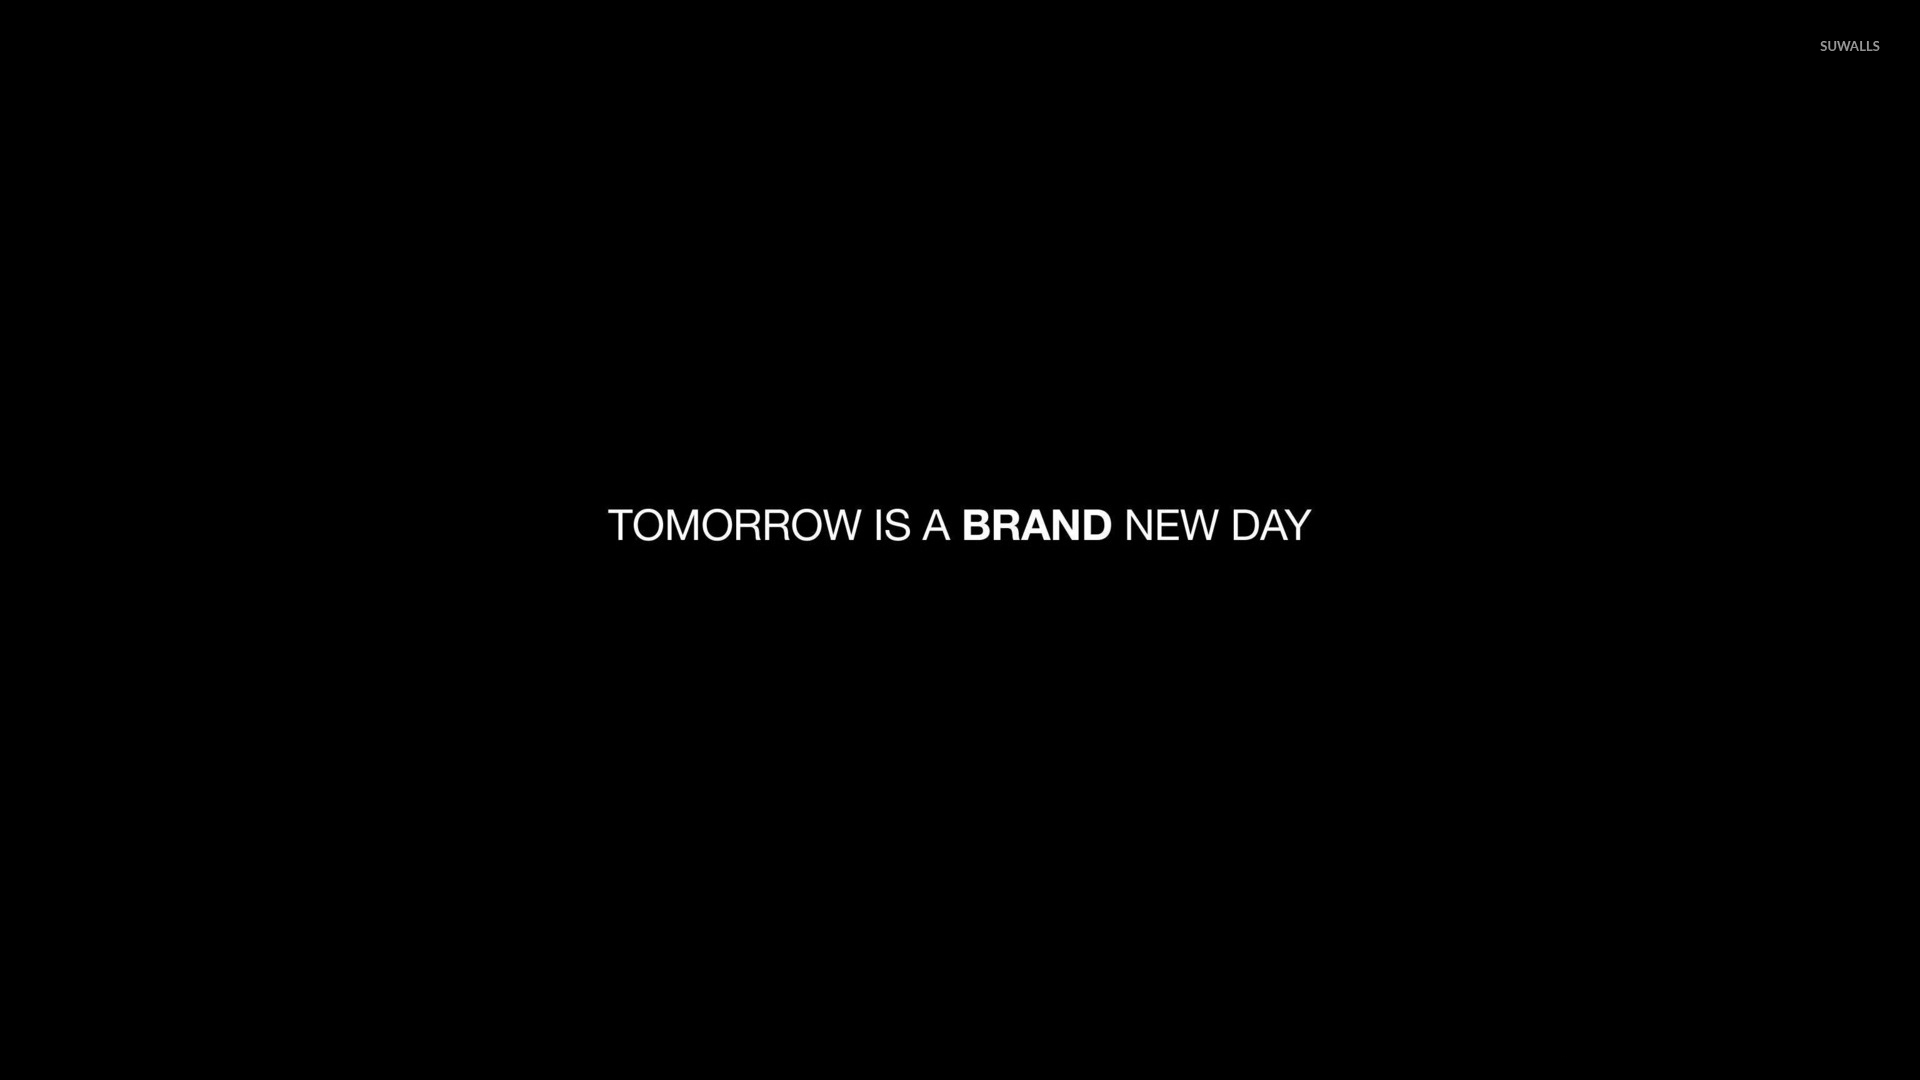 Tomorrow Is A Brand New Day Wallpaper Quote Wallpapers